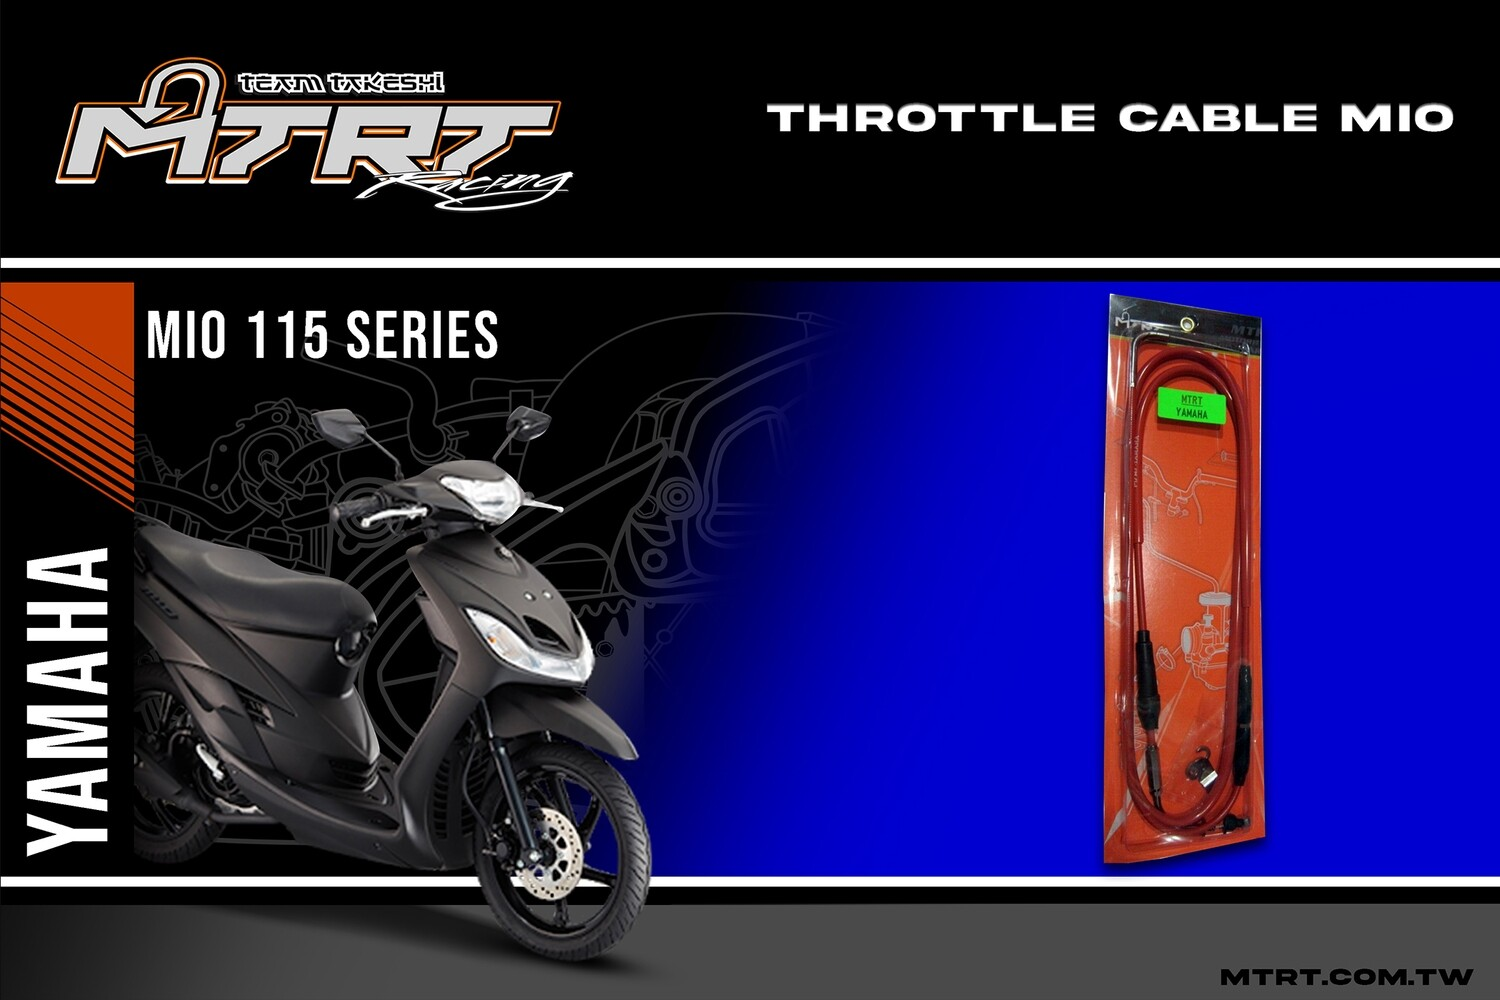 THROTTLE CABLE MIO MTRT